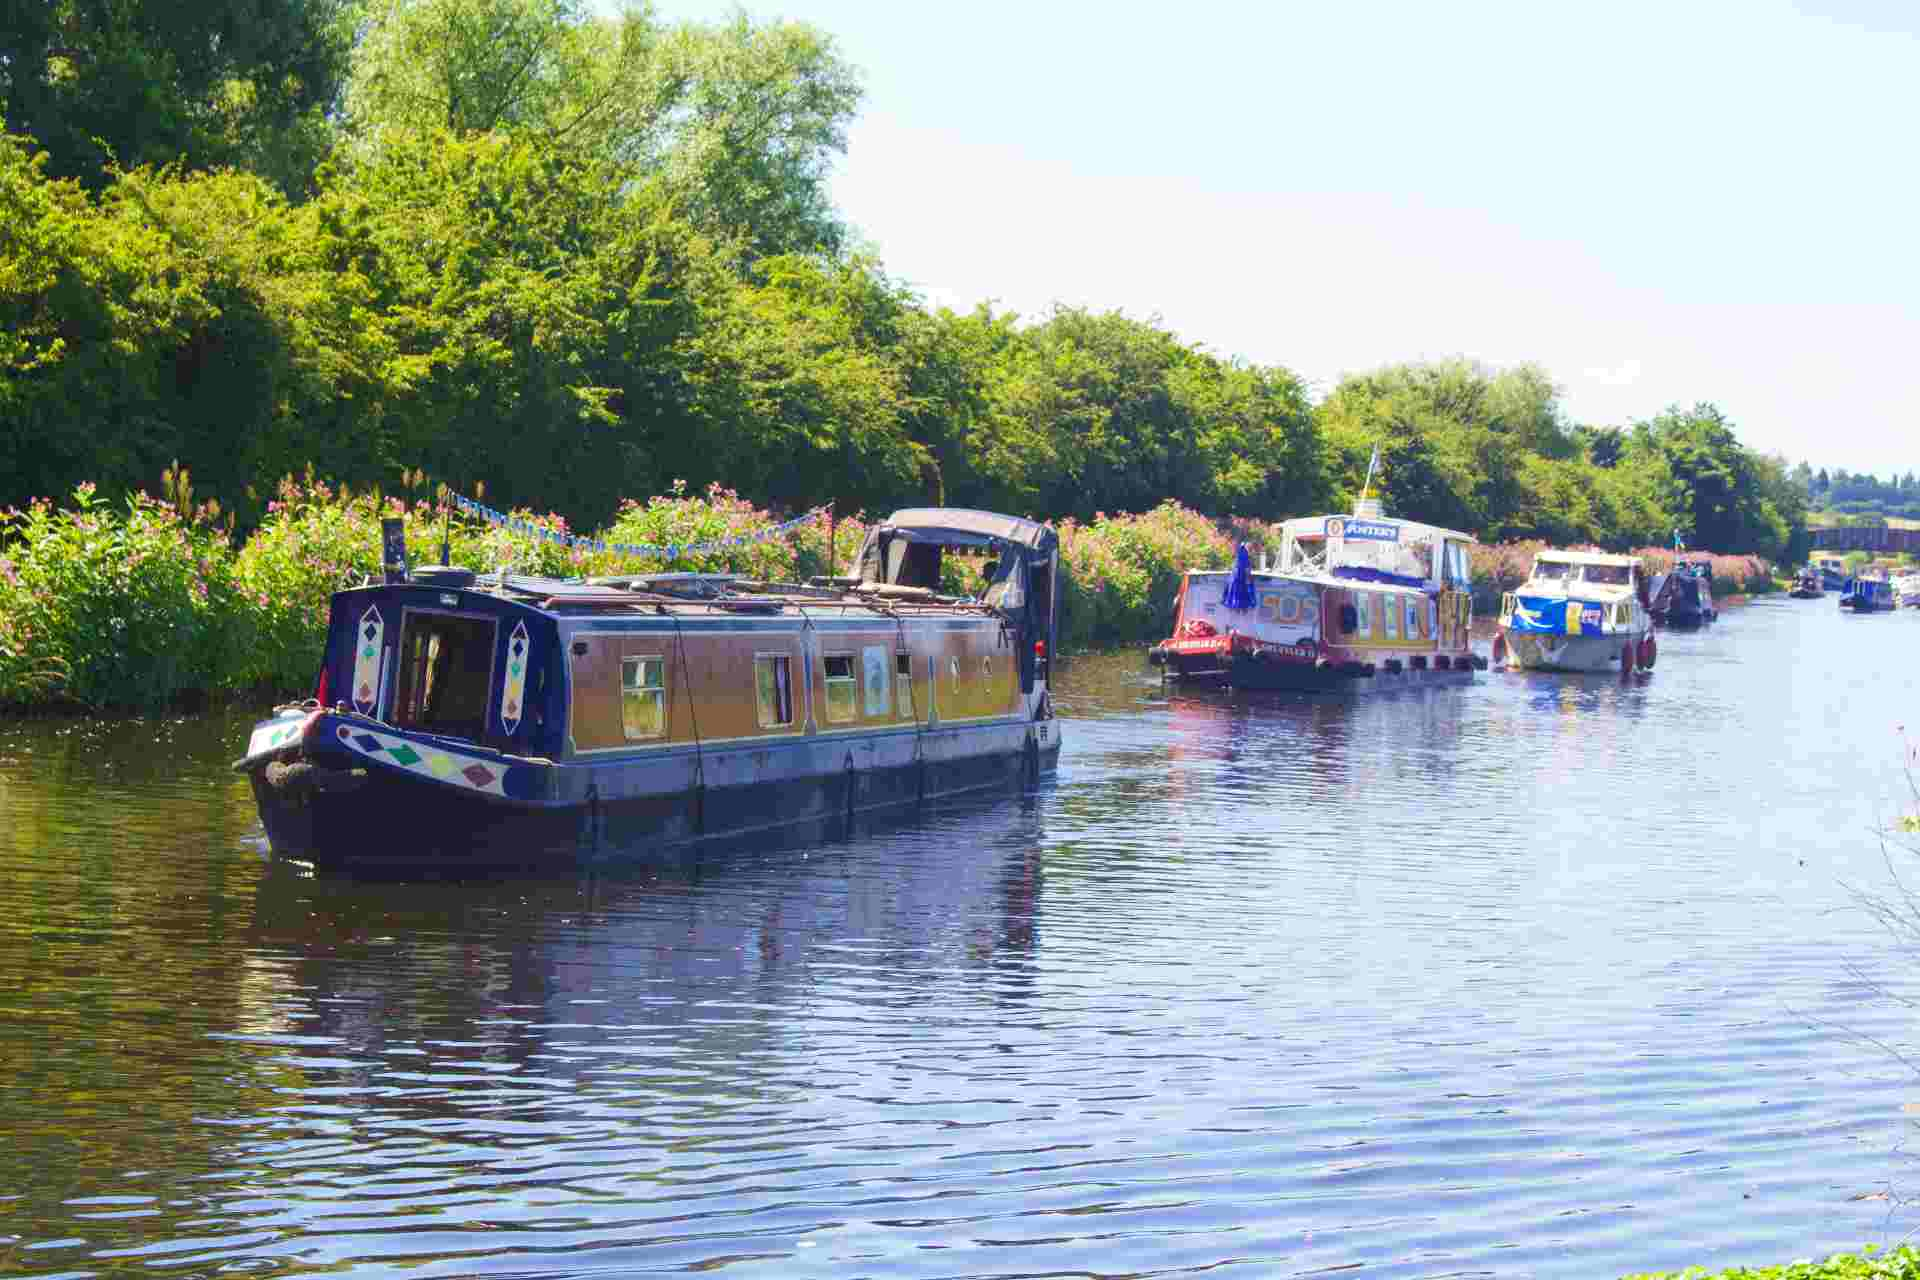 A Buyer's Guide To Narrowboat Insurance